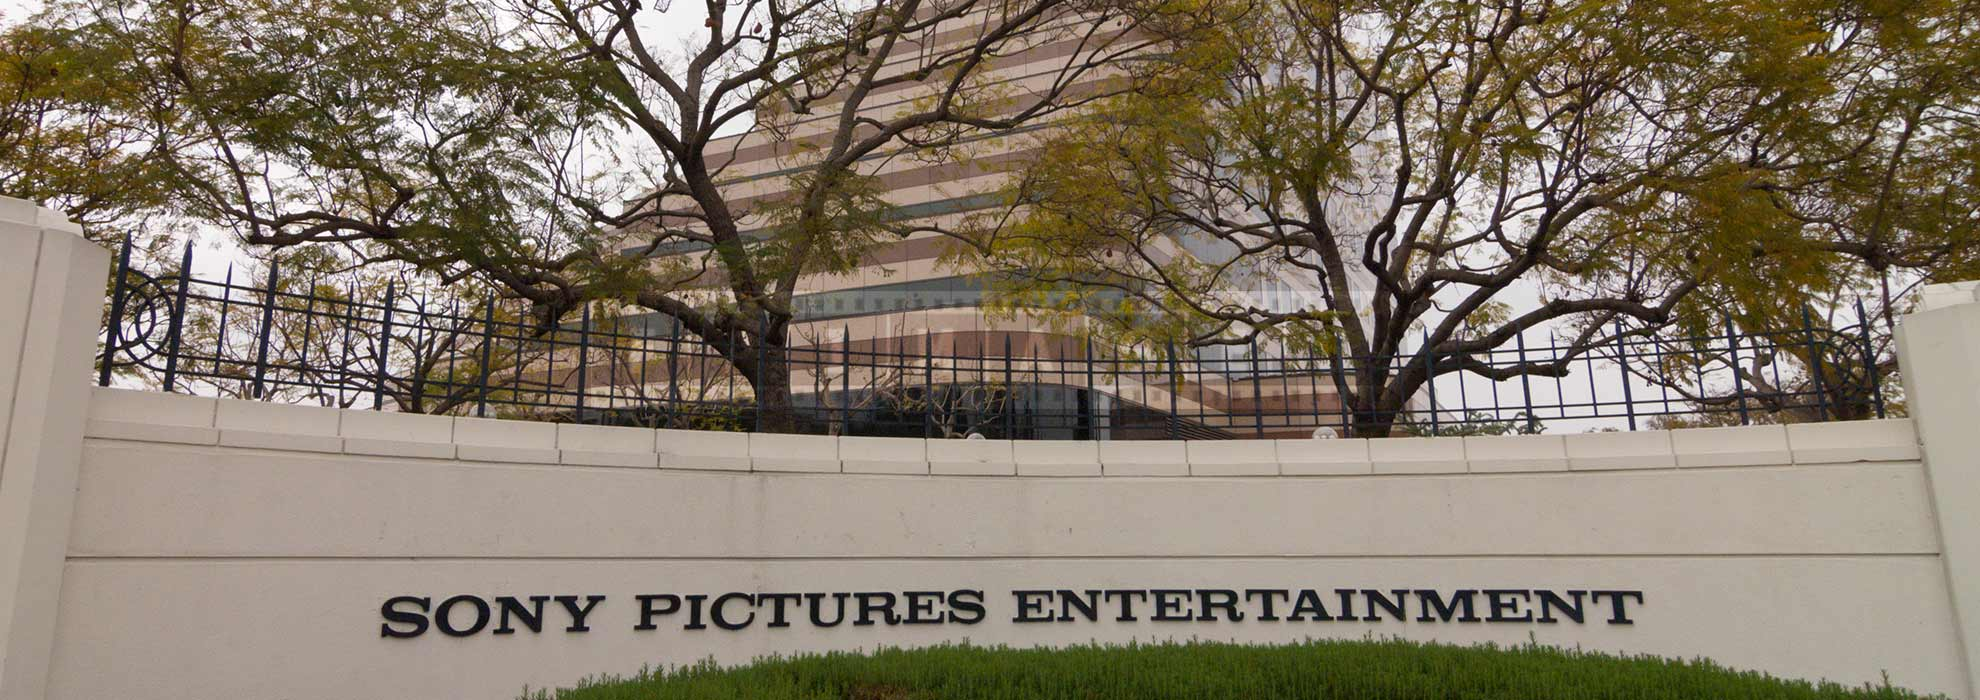 Sony Pictures Entertainment studios